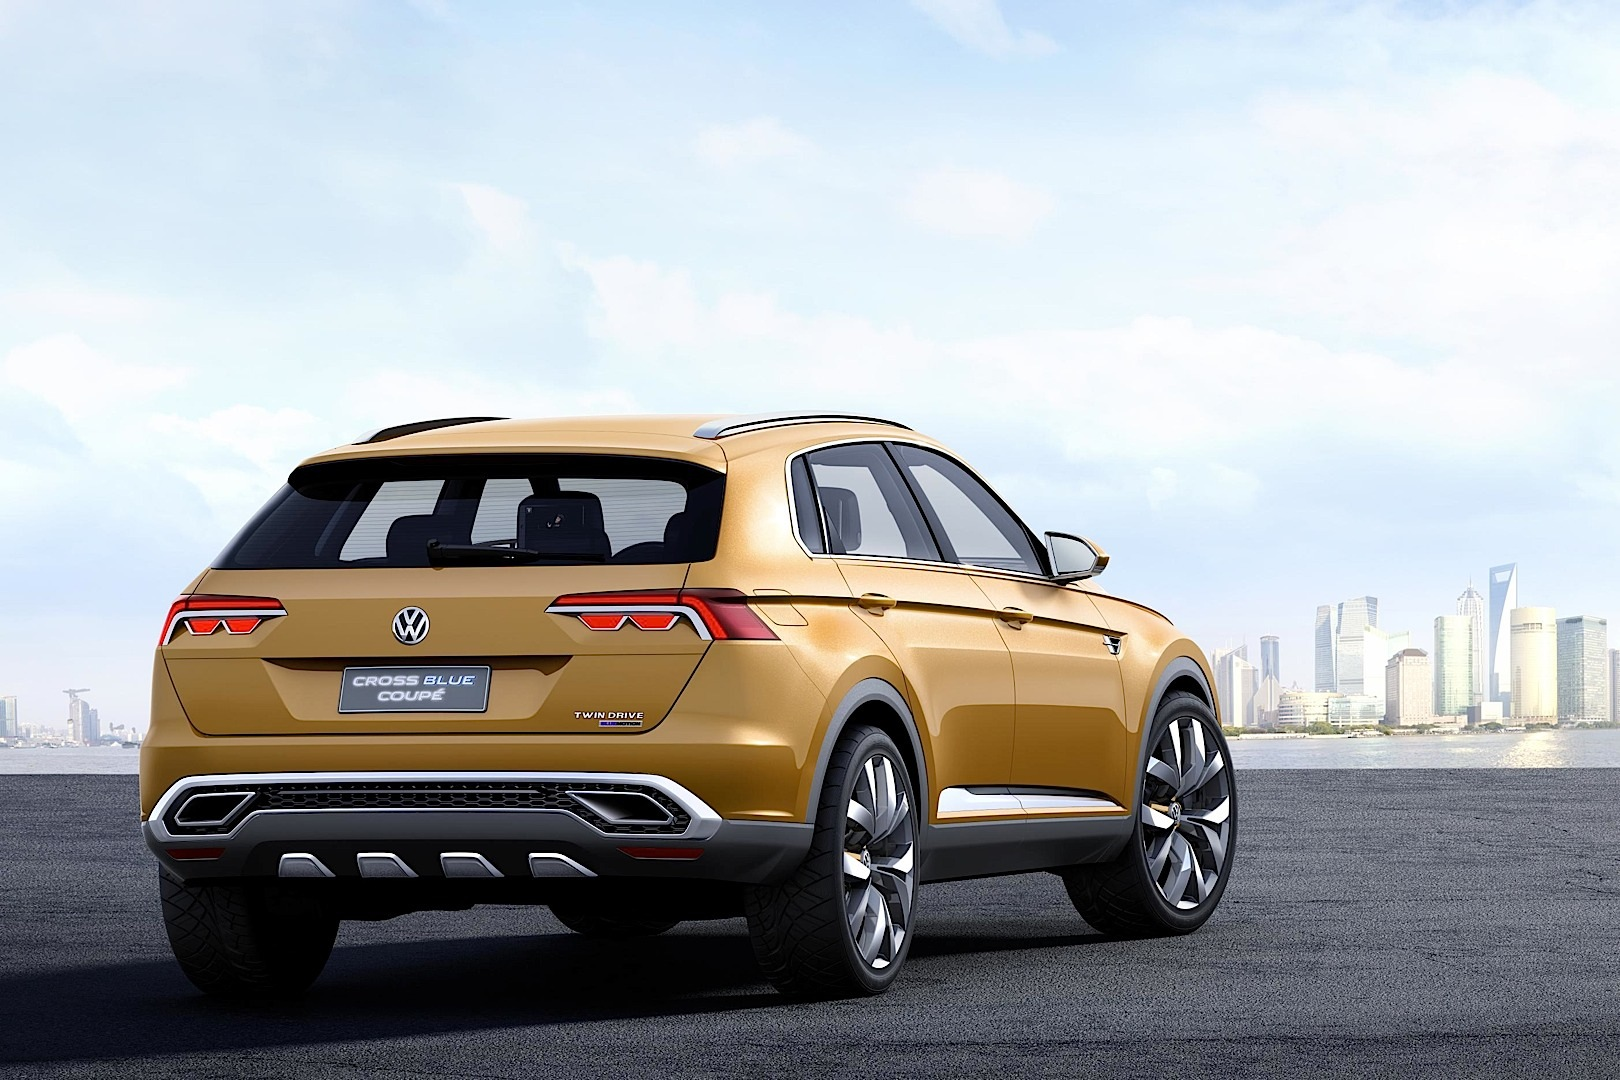 VW Says Its 7-Seat Crossover SUV Will Be the Segment Benchmark - autoevolution